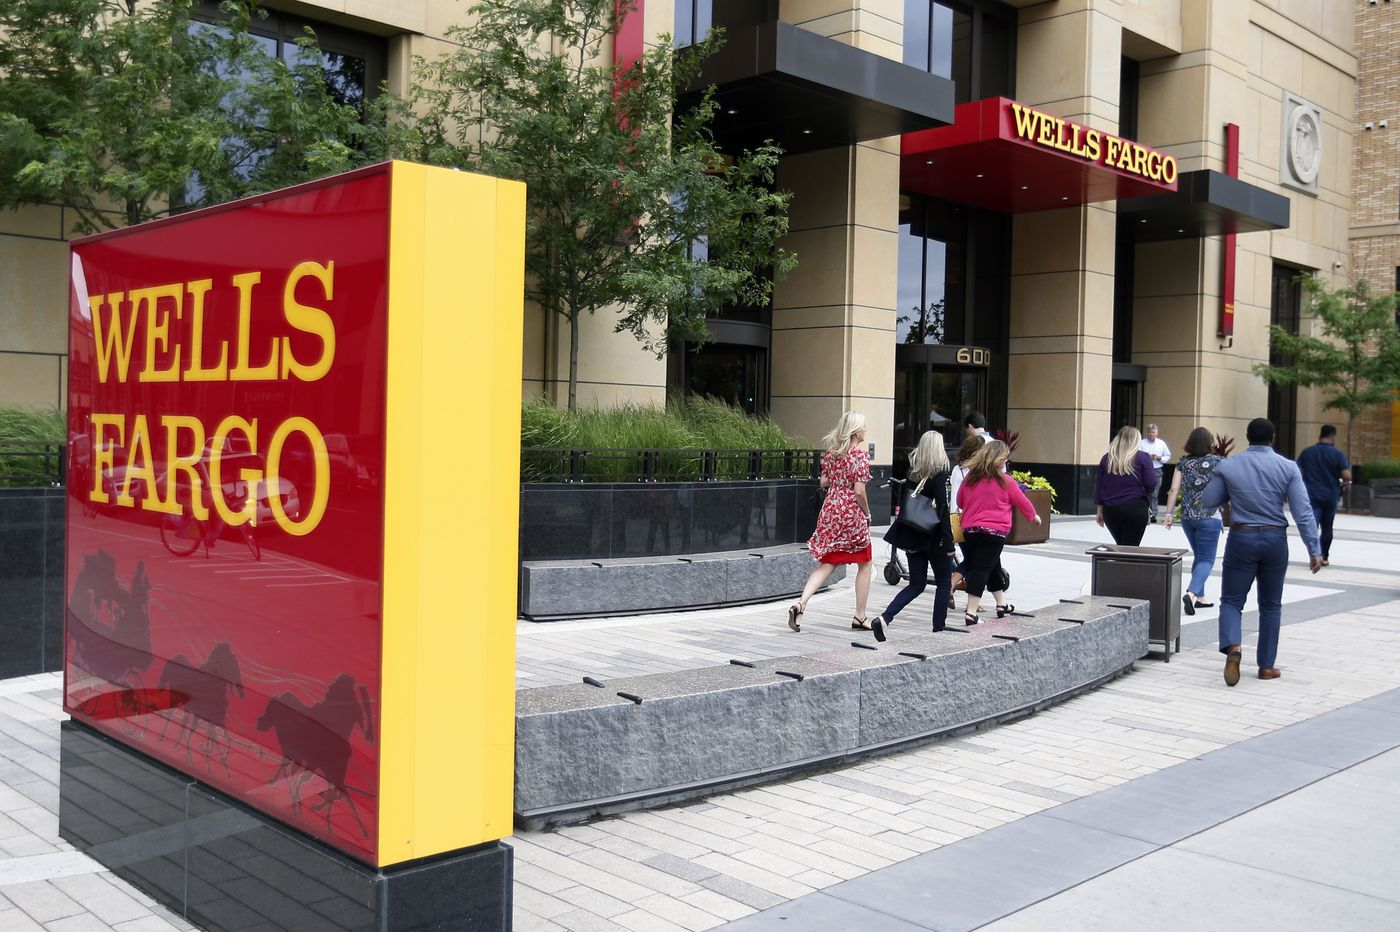 Wells Fargo fires more than 100 workers over relief fund abuse